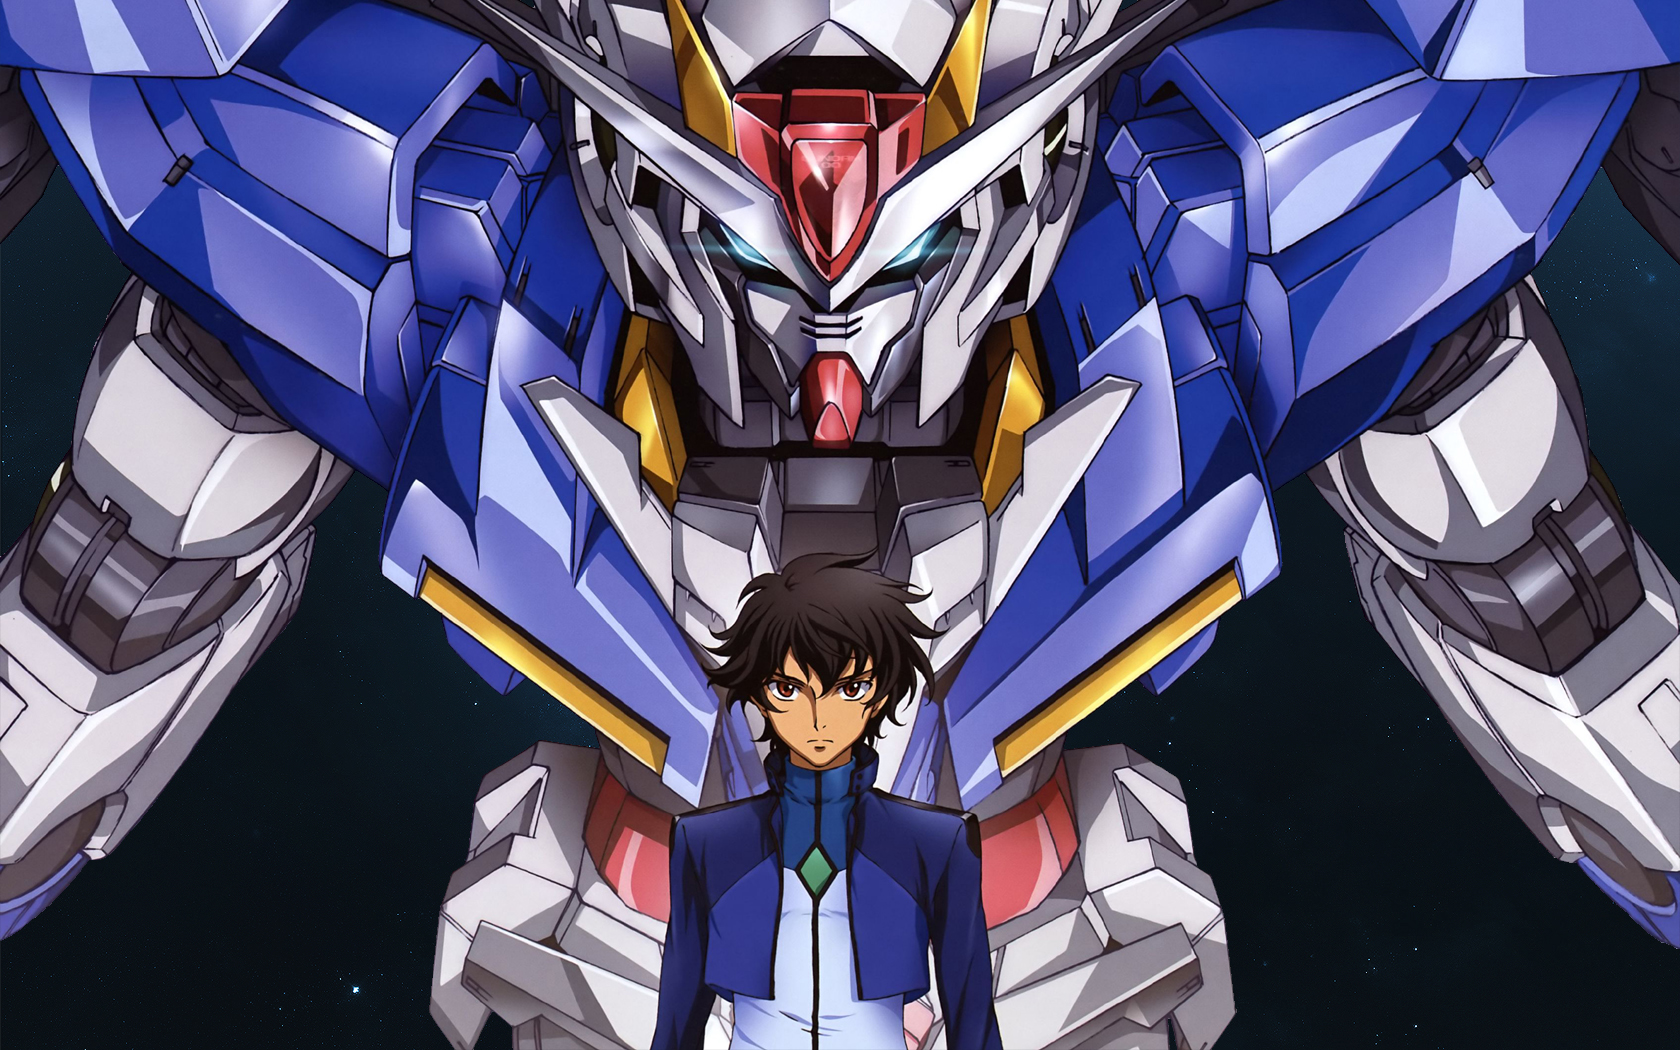 Mobile Suit Gundam 00 Wallpaper 189661 Zerochan Anime Image Board